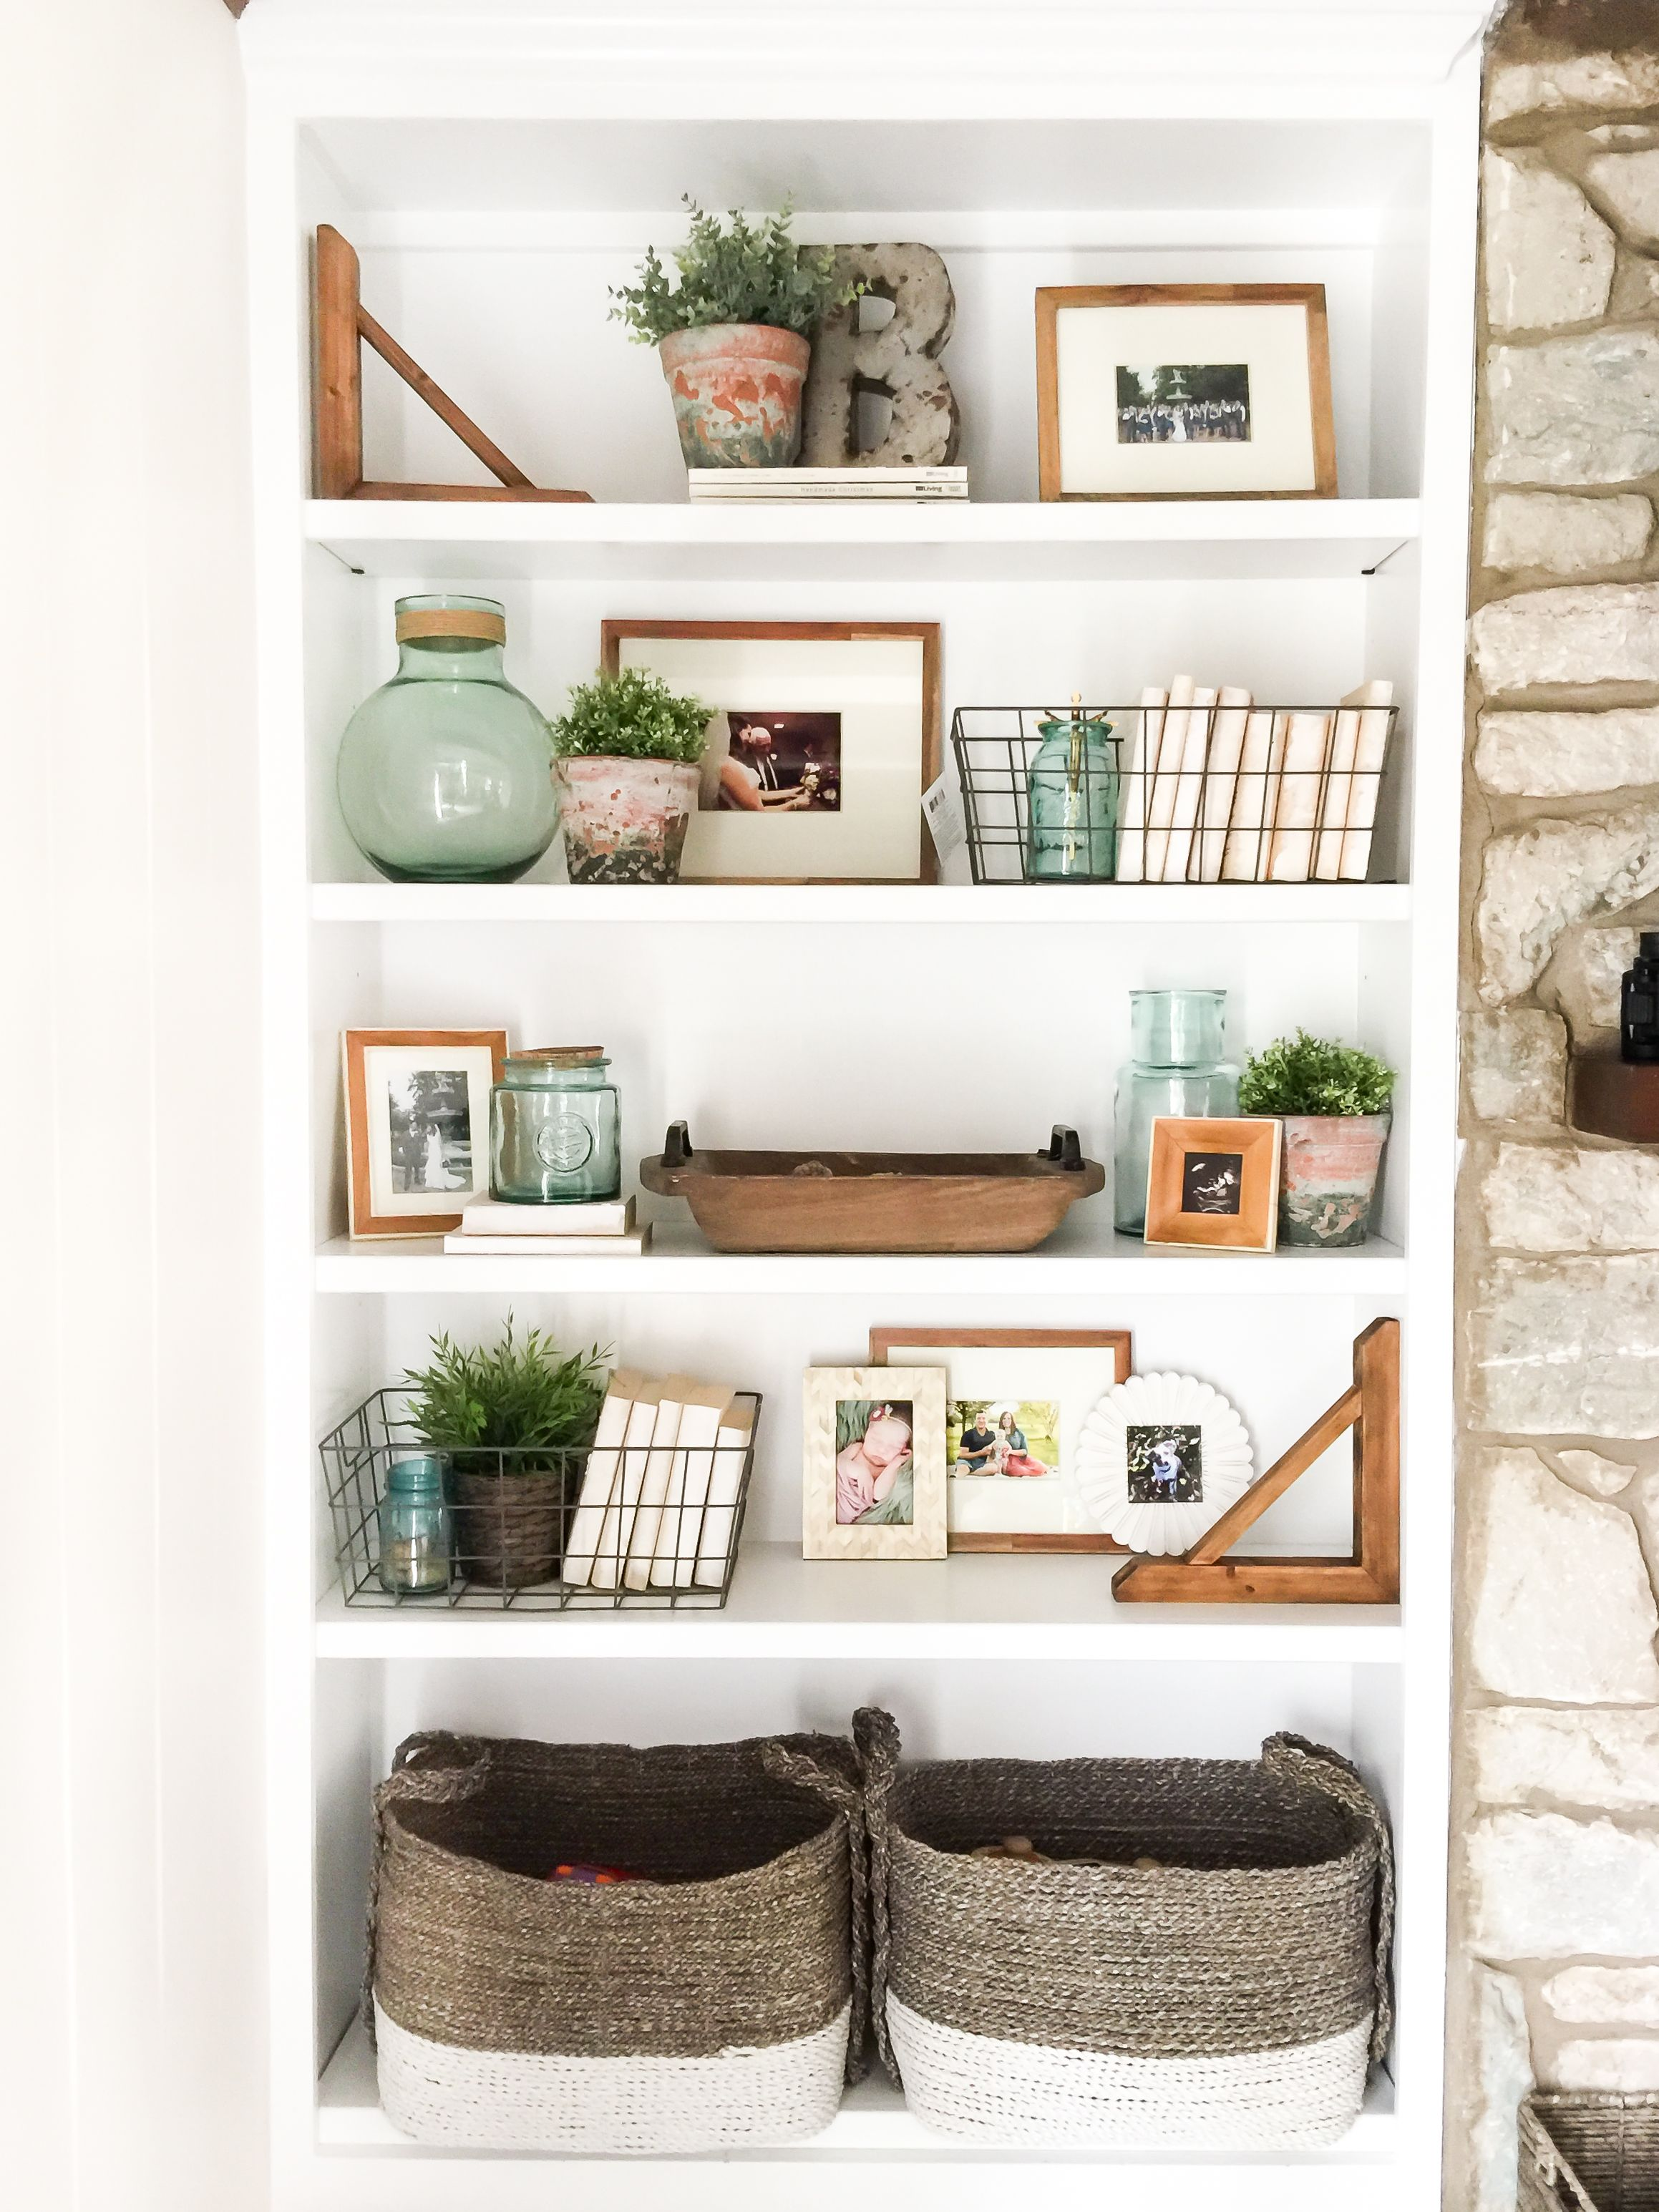 How To Style Open Shelves: 3 Tips For An Uncluttered Look | Home